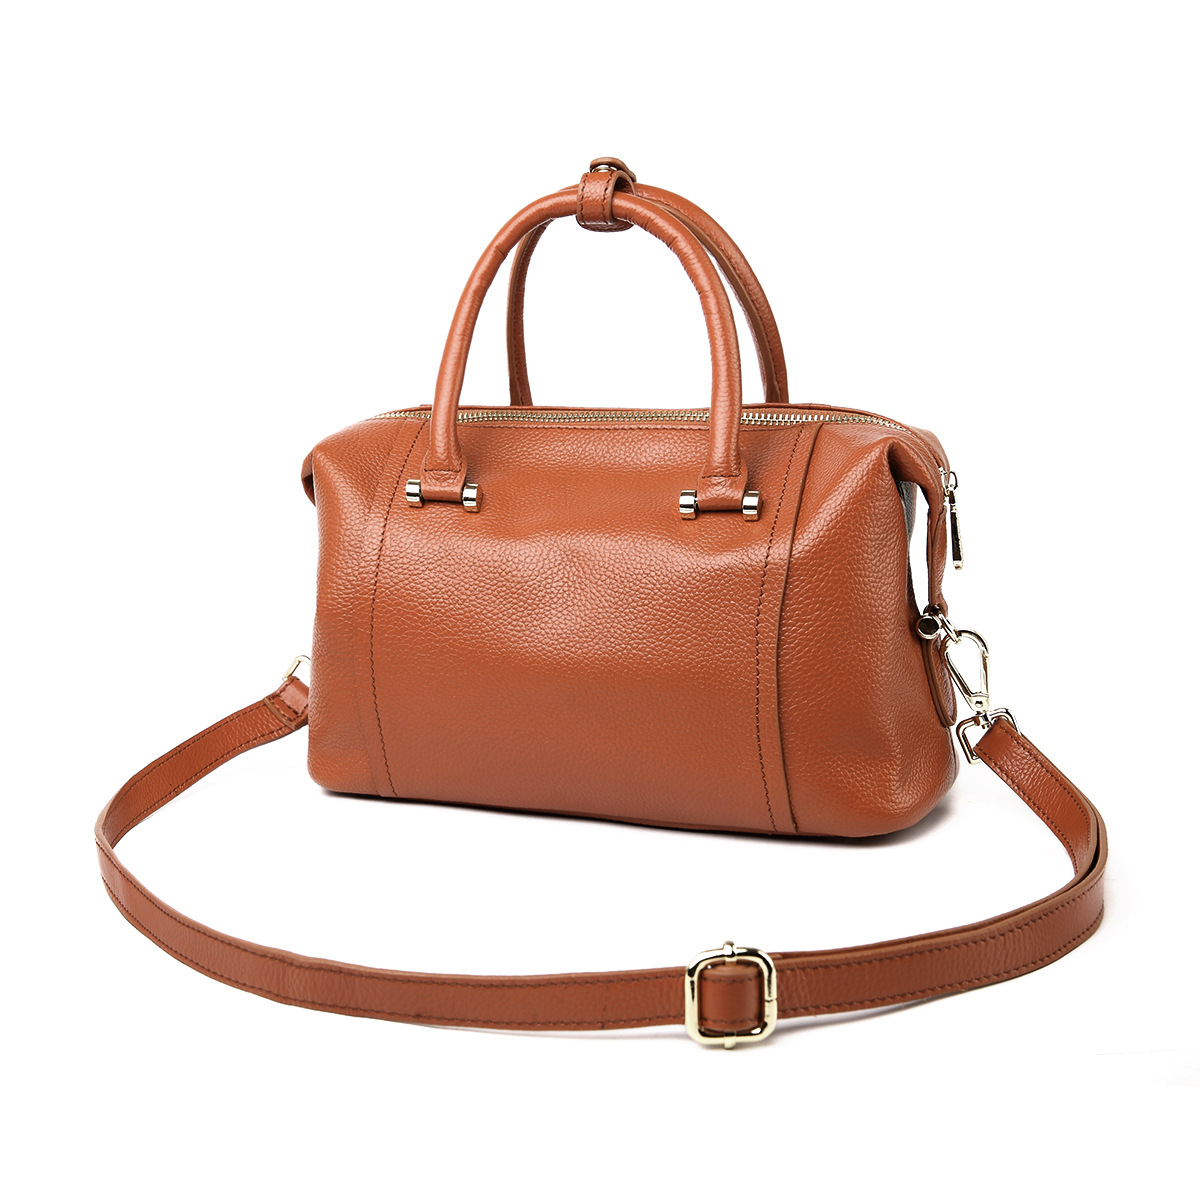 100% REAL Genuine Leather - 2016 Solid women bags leather handbags shoulder bag top handle cross body bag messenger bags(China (Mainland))